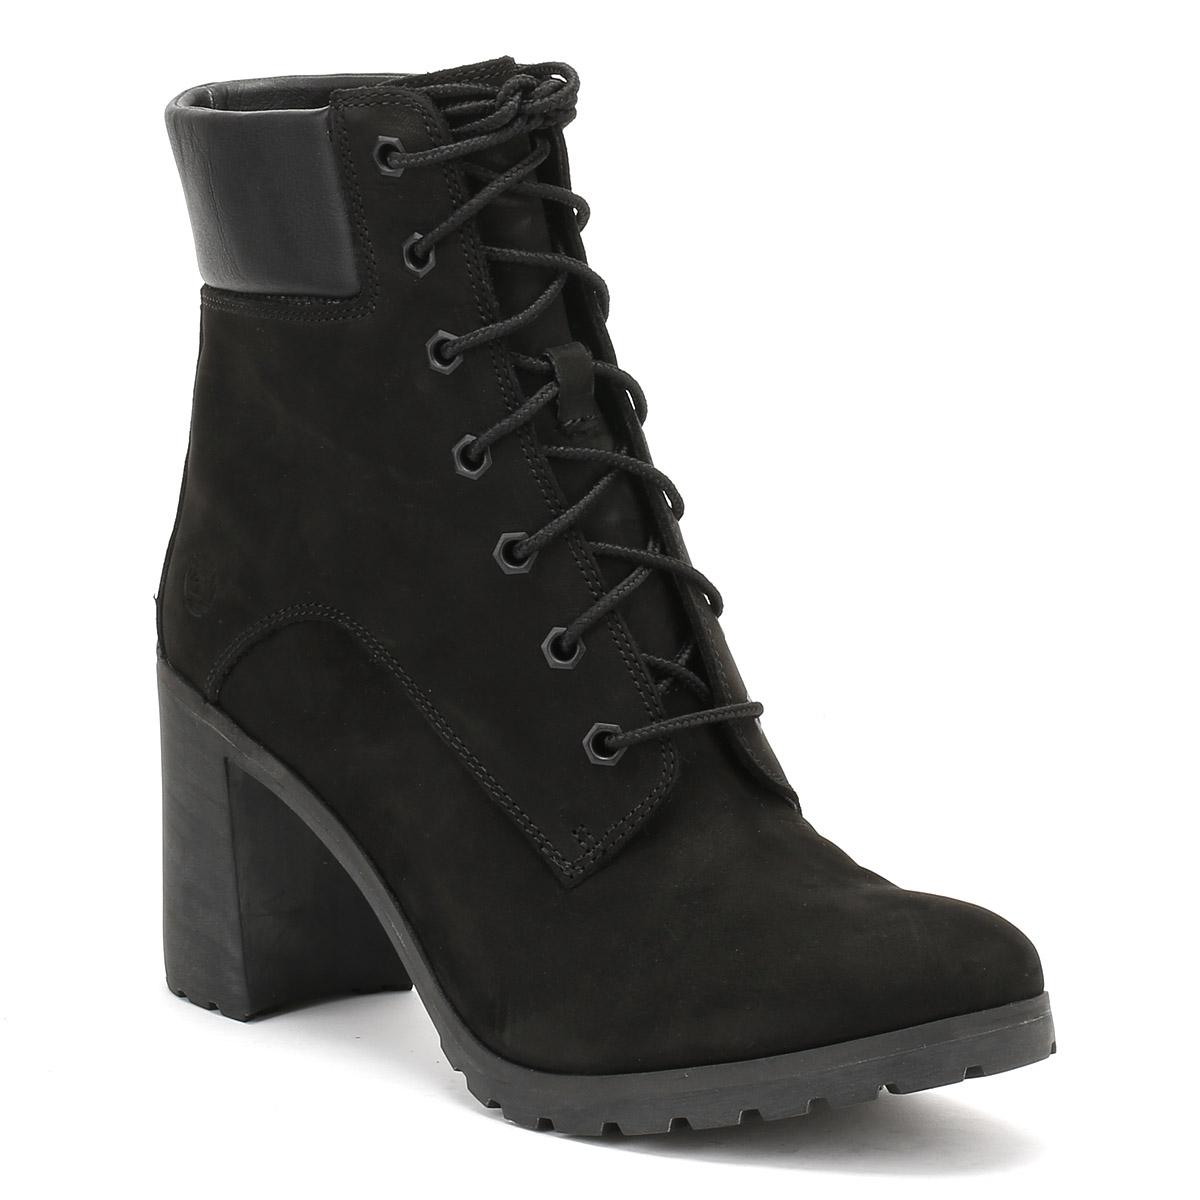 Timberland Womens Black Allington 6 Inch Boots in Black - Lyst